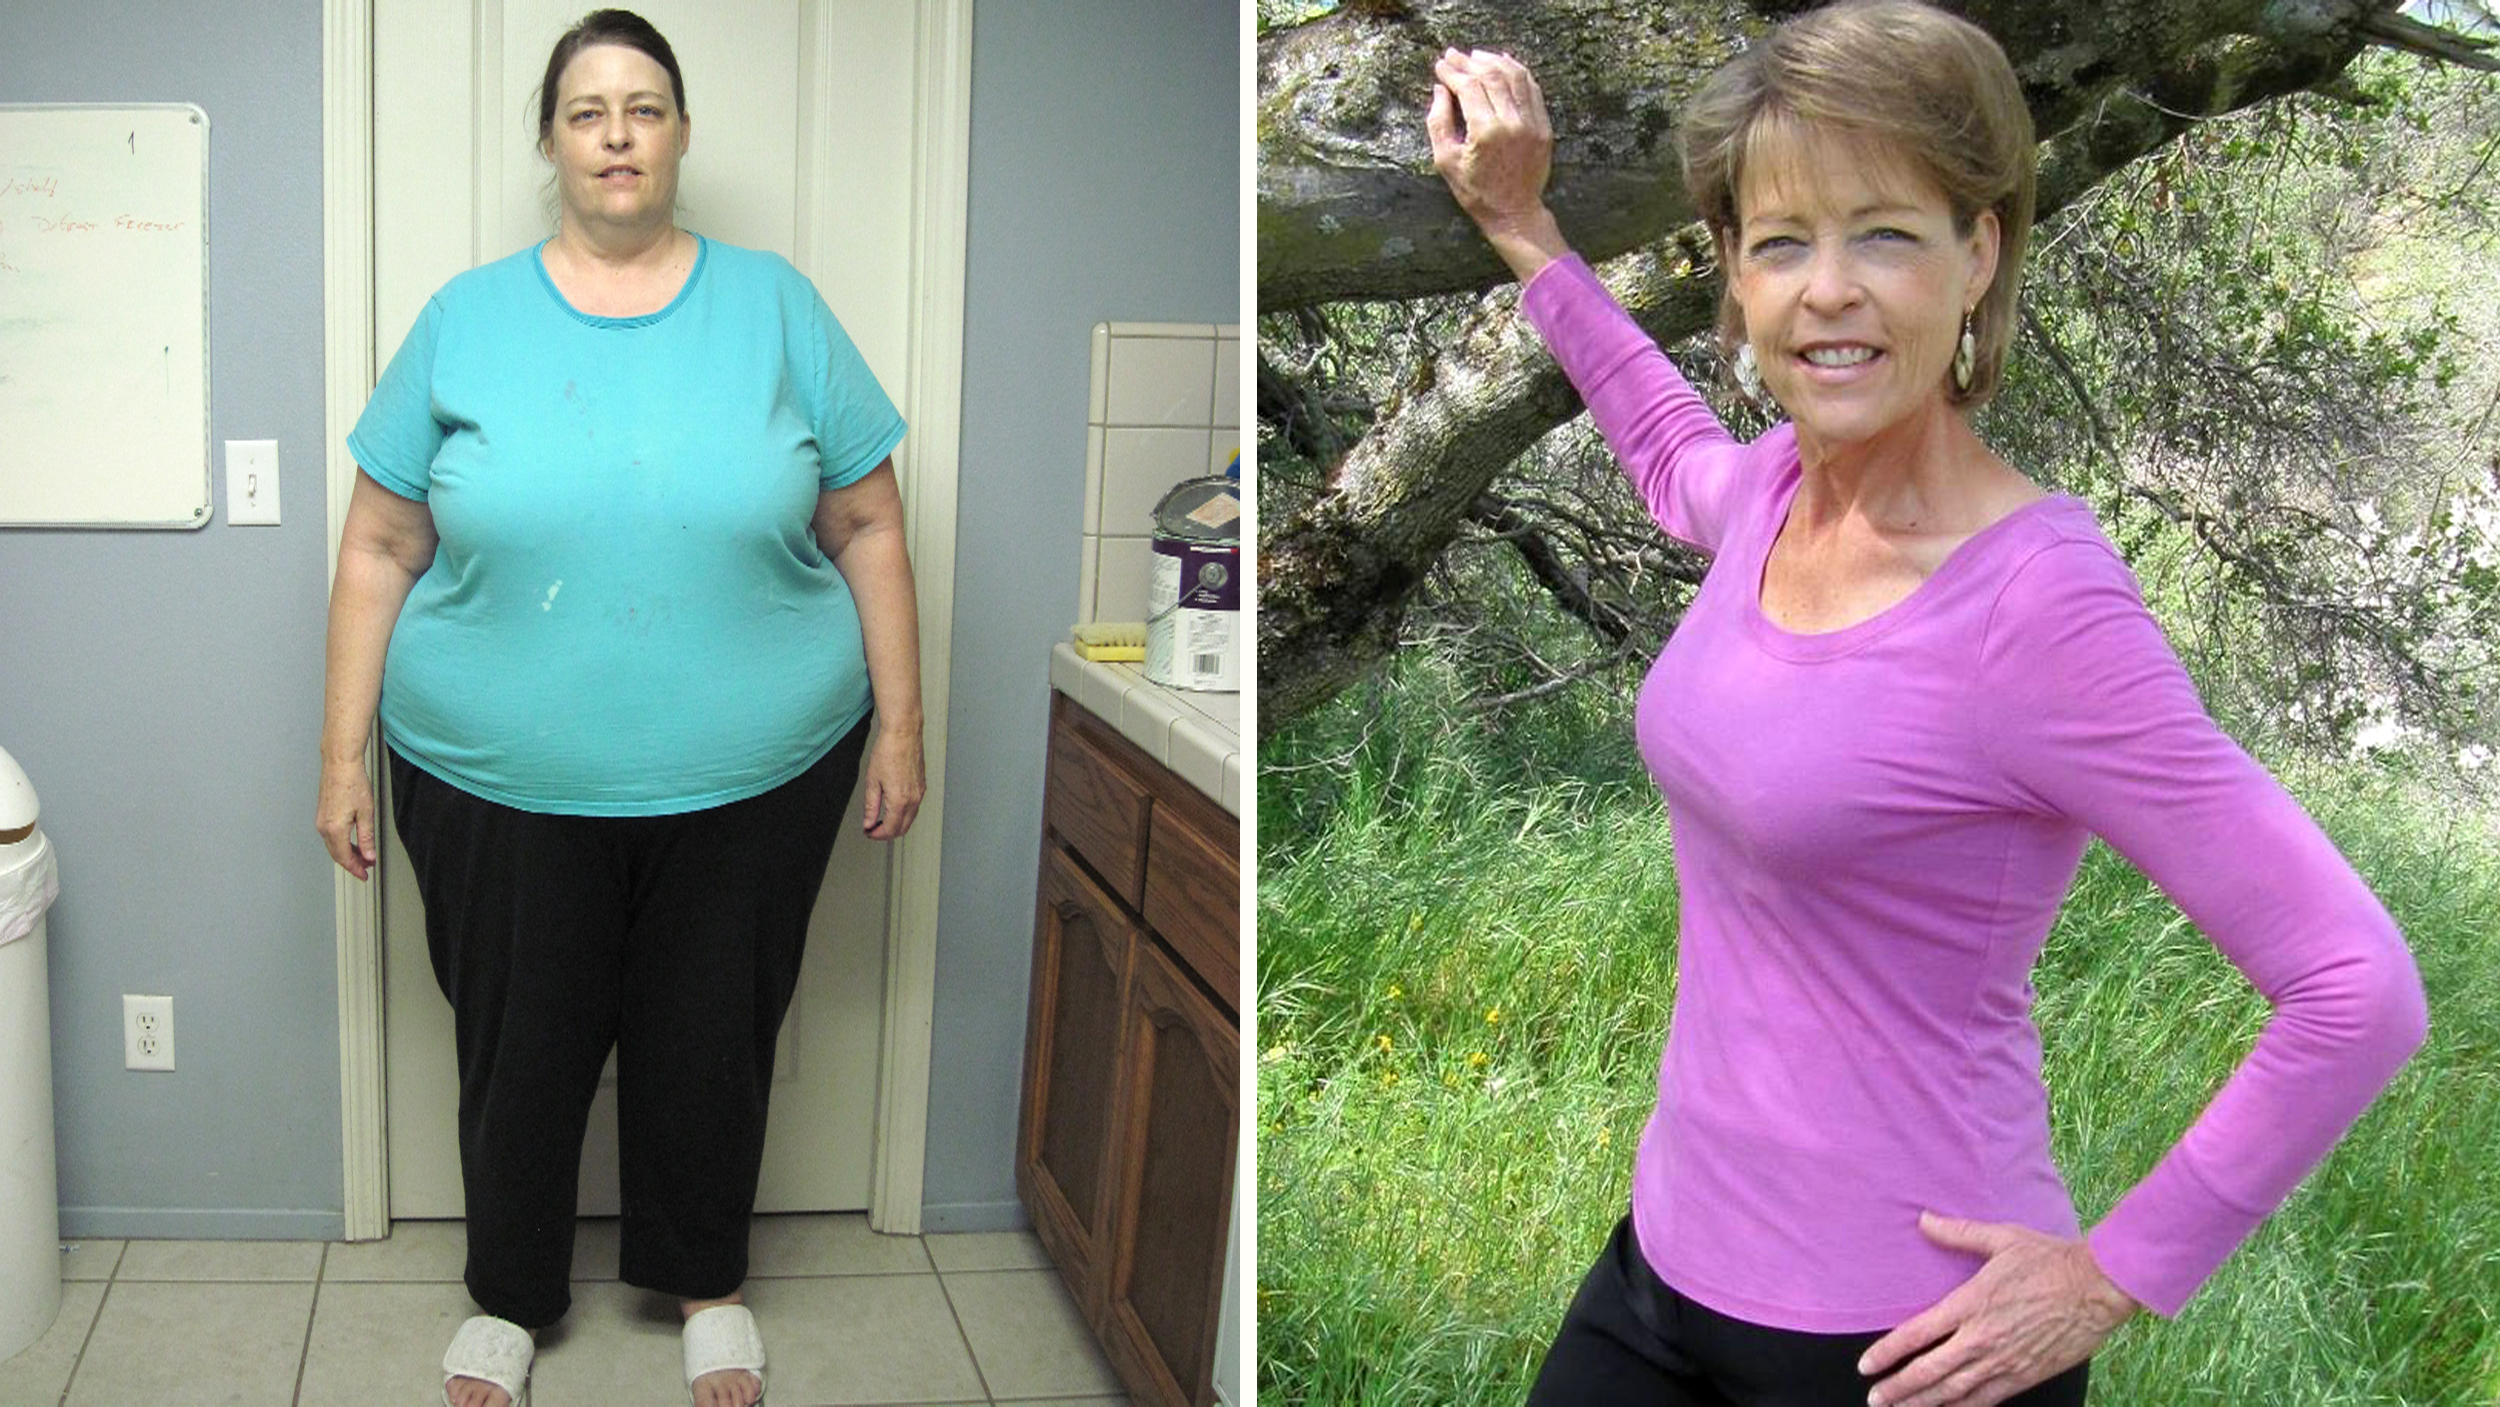 Midlife weight loss: How this woman lost 5 pounds in her 5s